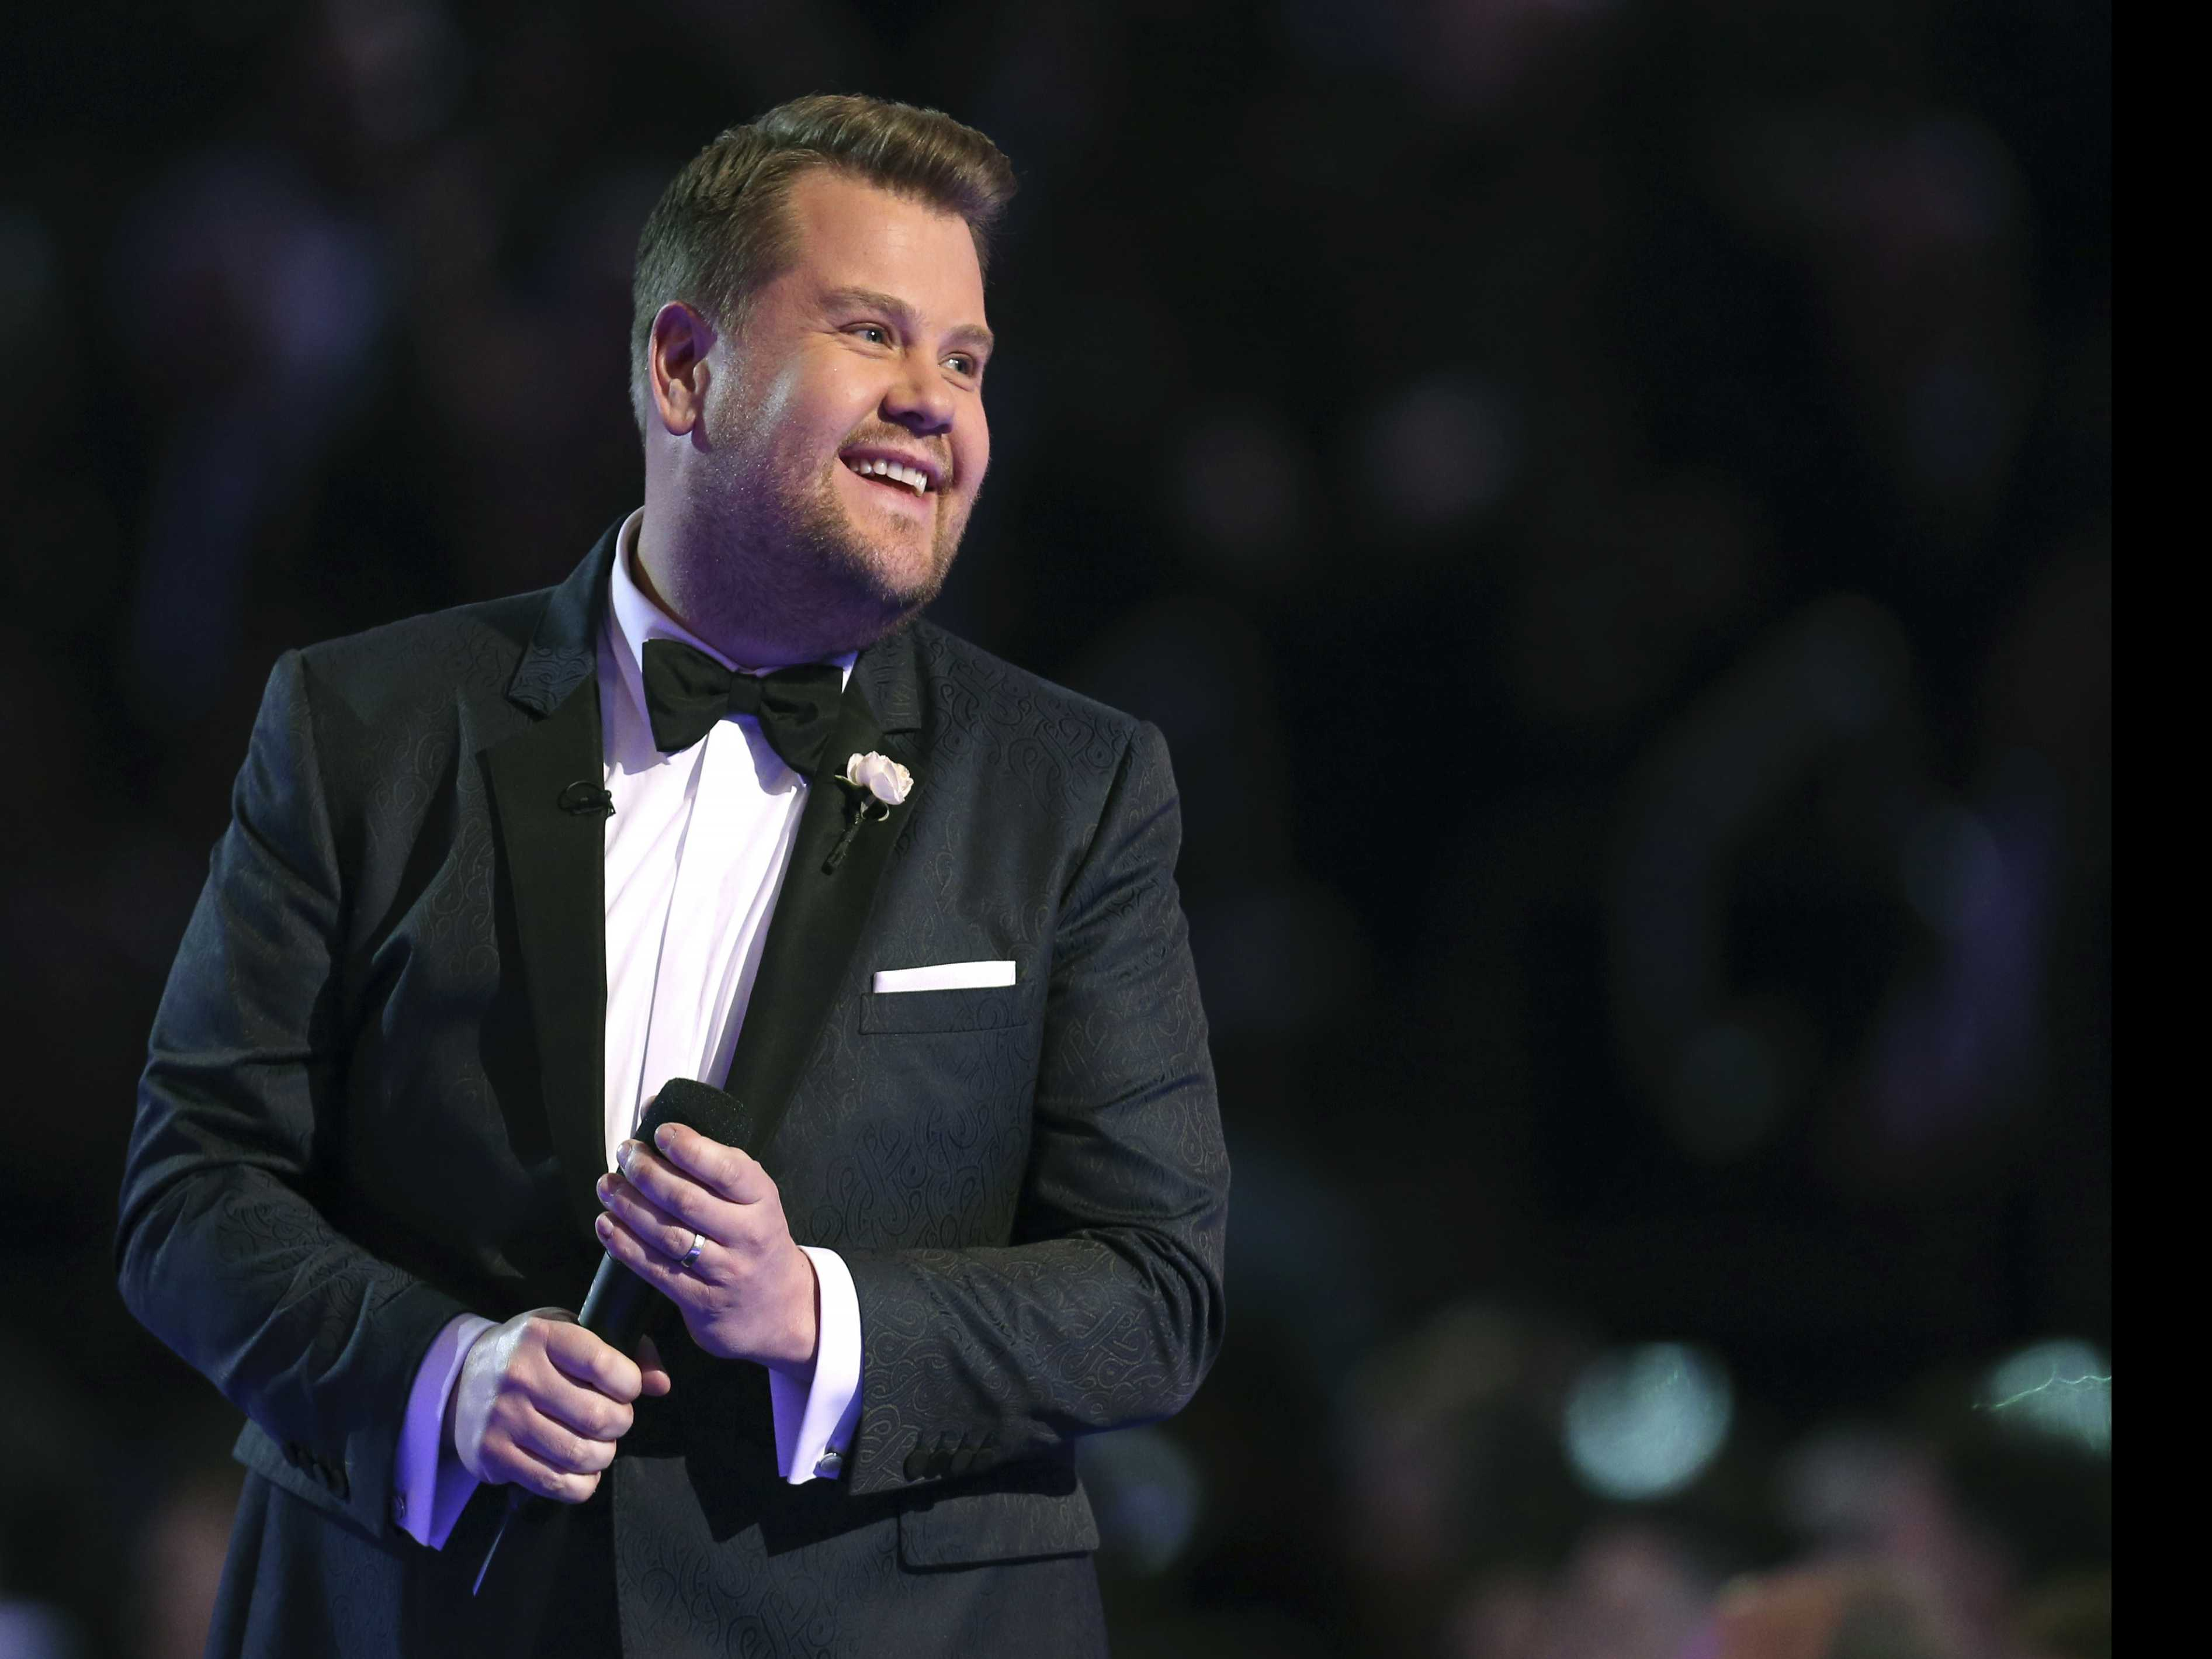 James Corden Talks About His London Shows, Trump-Era Humor